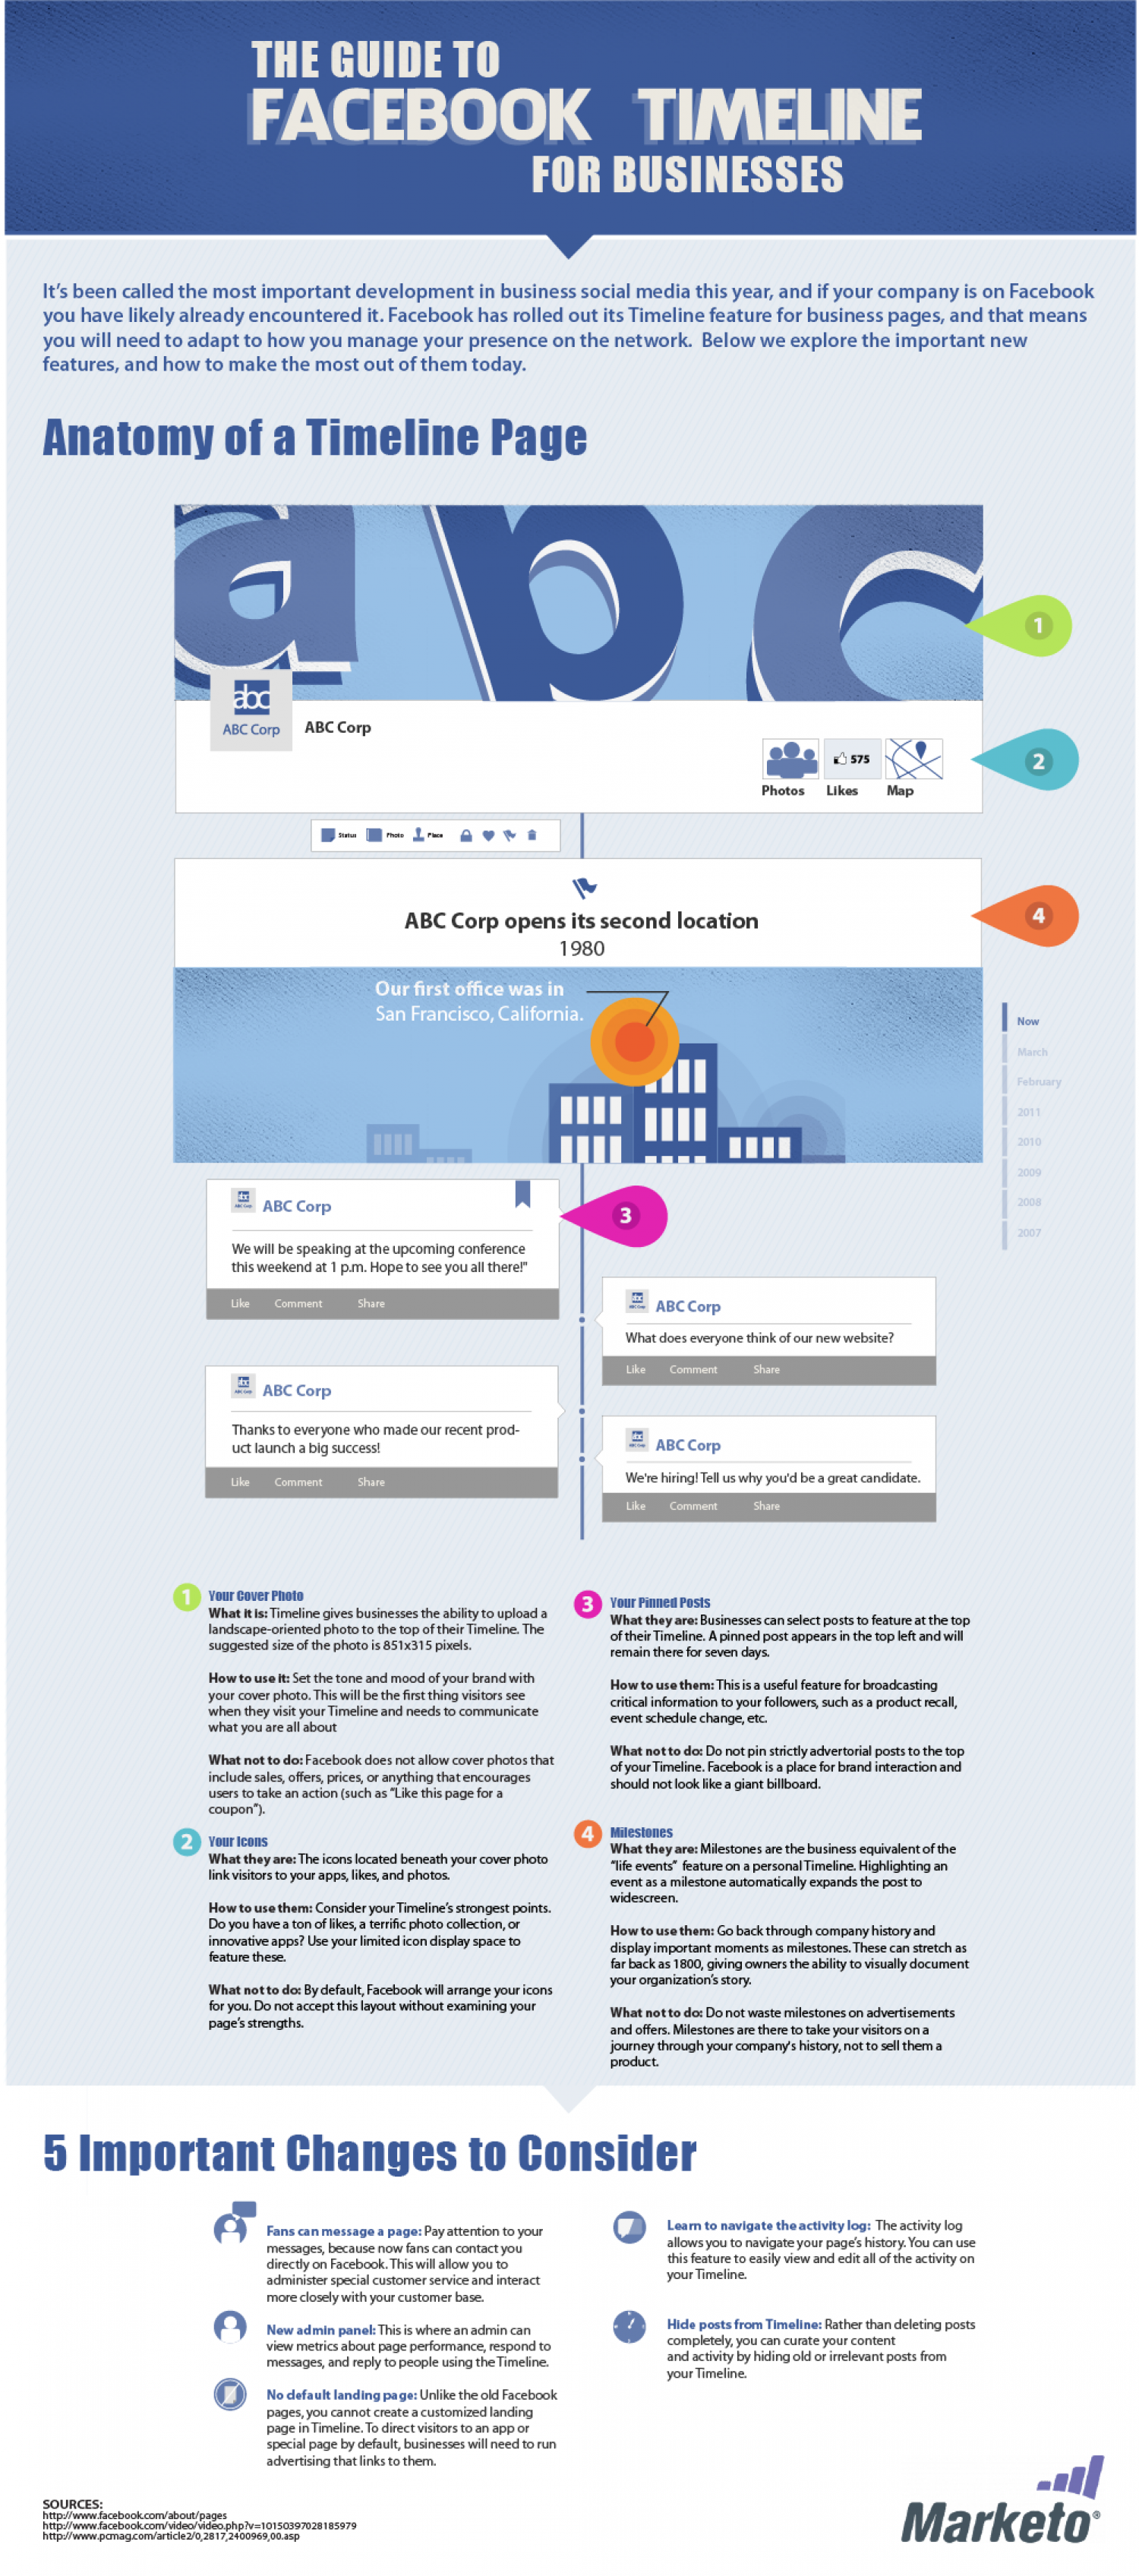 The Guide to Facebook Timeline For Business Infographic